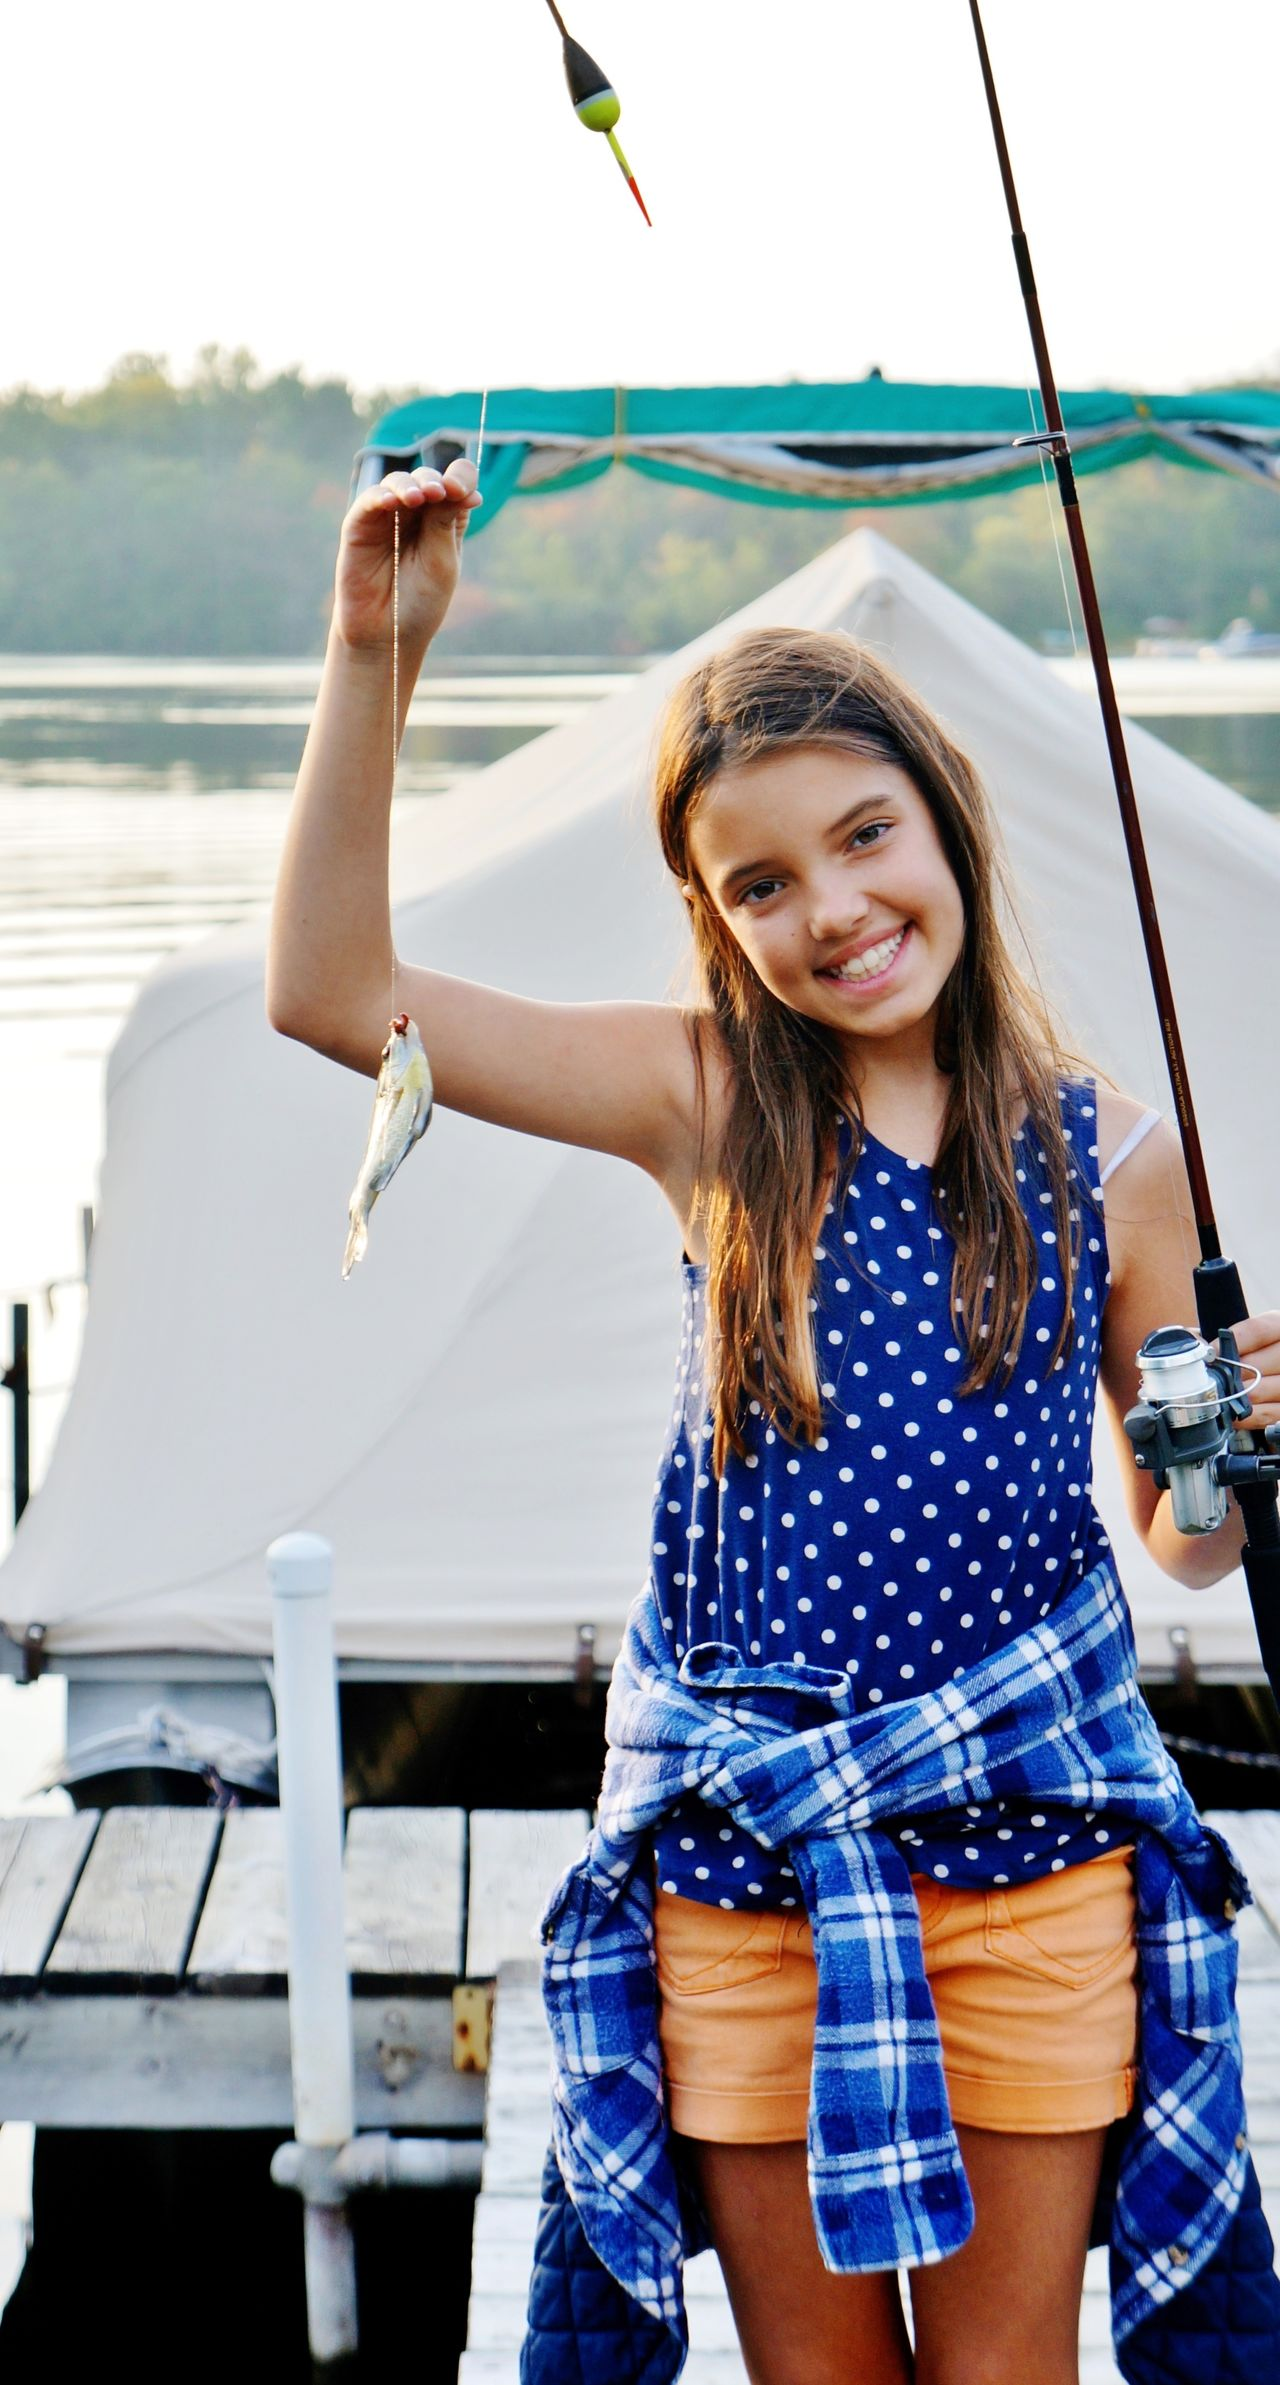 Beautiful stock photos of fisch, 10-11 Years, Casual Clothing, Catch Of Fish, Caucasian Ethnicity